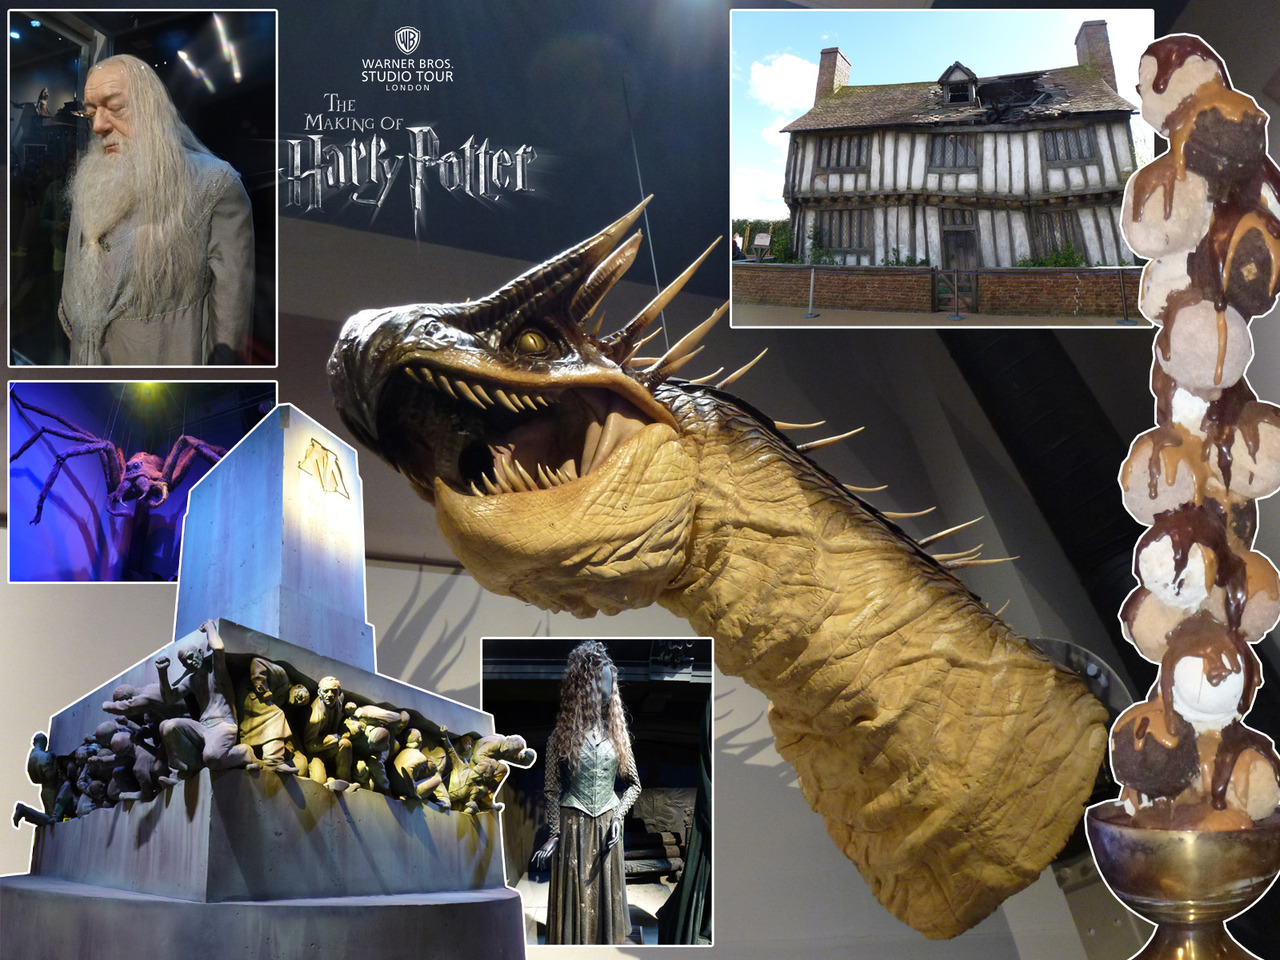 "Photos from the Warner Bros Studio Tour - The Making of Harry Potter. Main: Lifesize Hungarian Horntail head. Clockwise from top left: Scarily realistic Dumbledore (Michael Gambon) model. The Potters' cottage in Godric's Hollow. A cast resin ice cream dessert. Bellatrix LeStrange (Helena Bonham Carter)'s costume. Full-size Ministry of Magic ""Magic Is Might"" statue. Full-size animatronic Aragog."